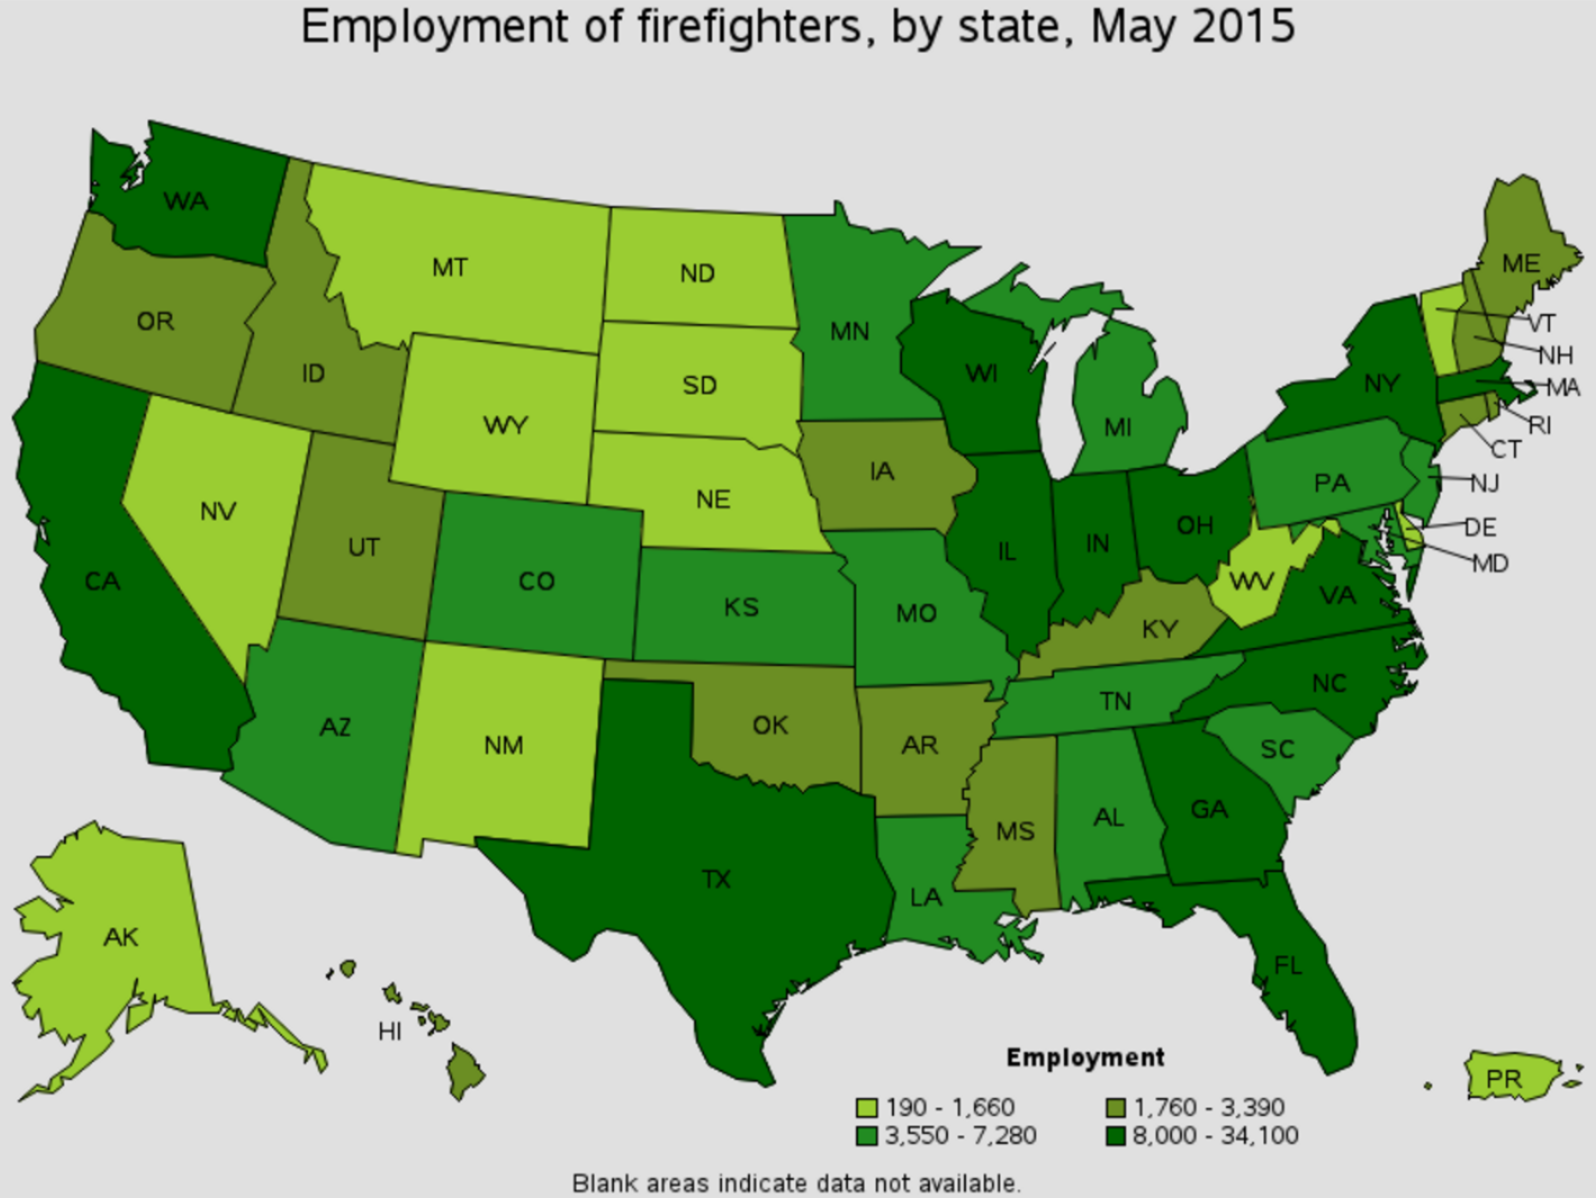 firefighter job outlook by state Omaha Nebraska